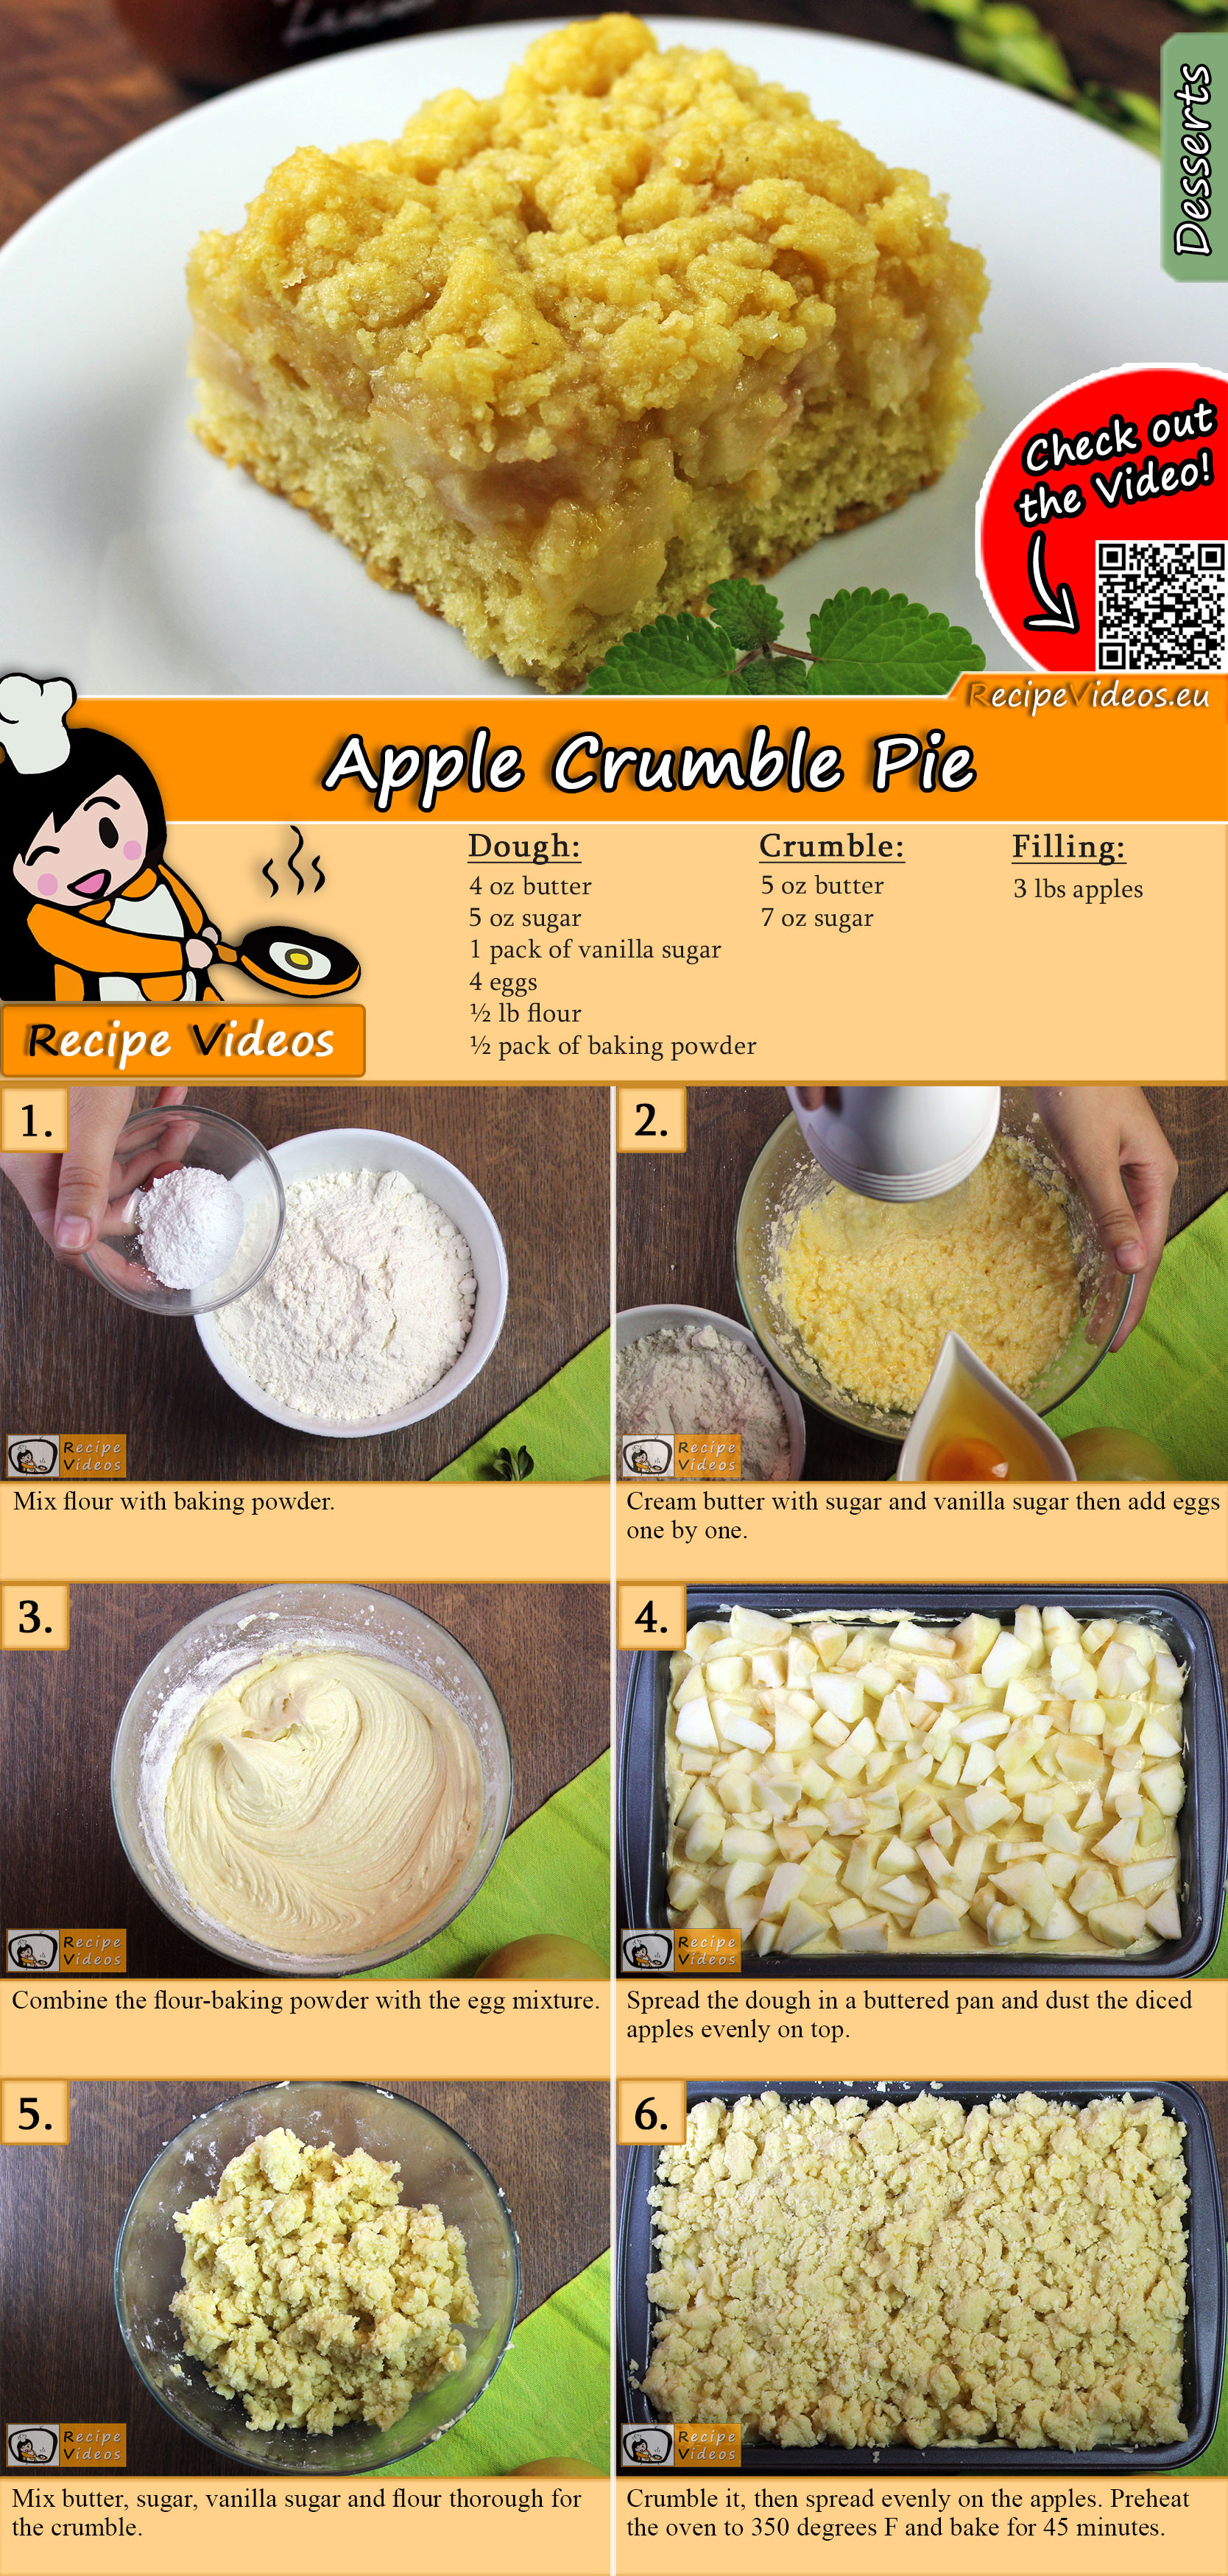 Apple Crumble Pie recipe with video